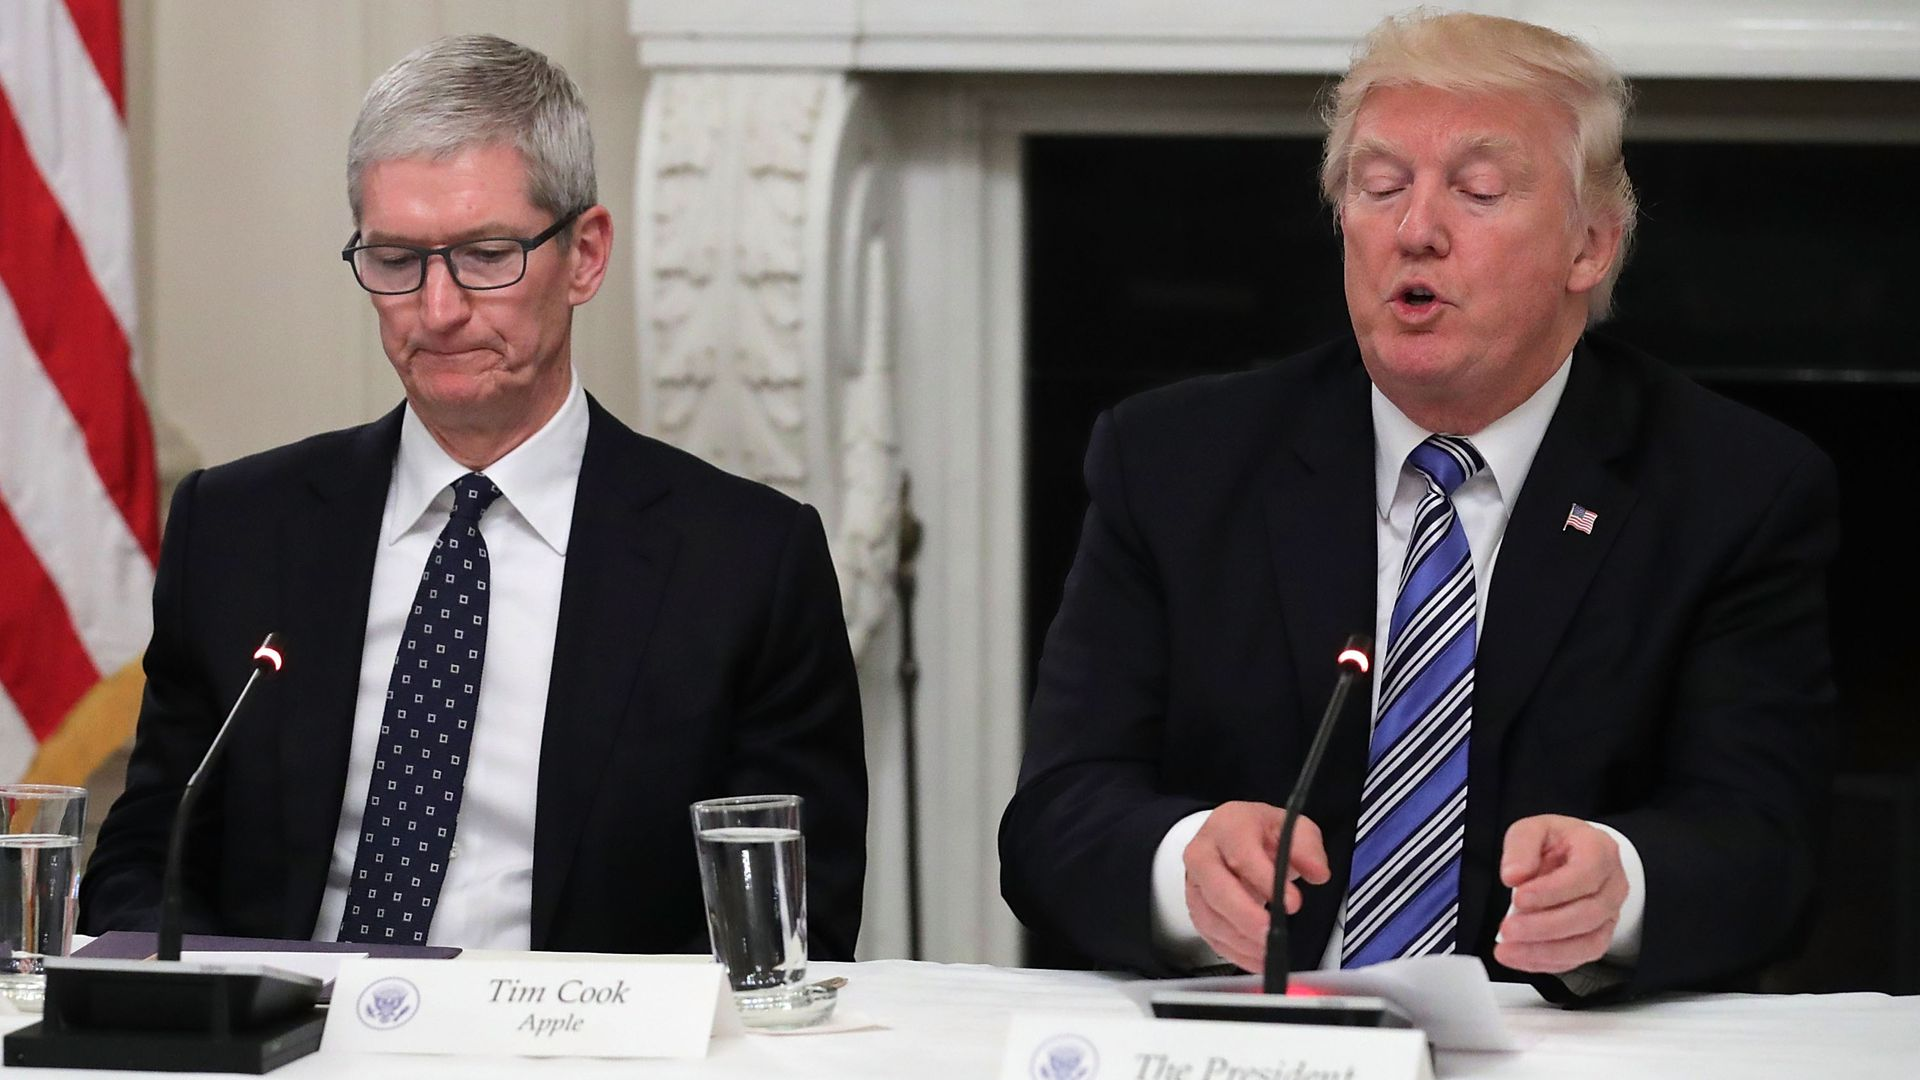 Tim Cook and Donald Trump during a 2017 White House meeting